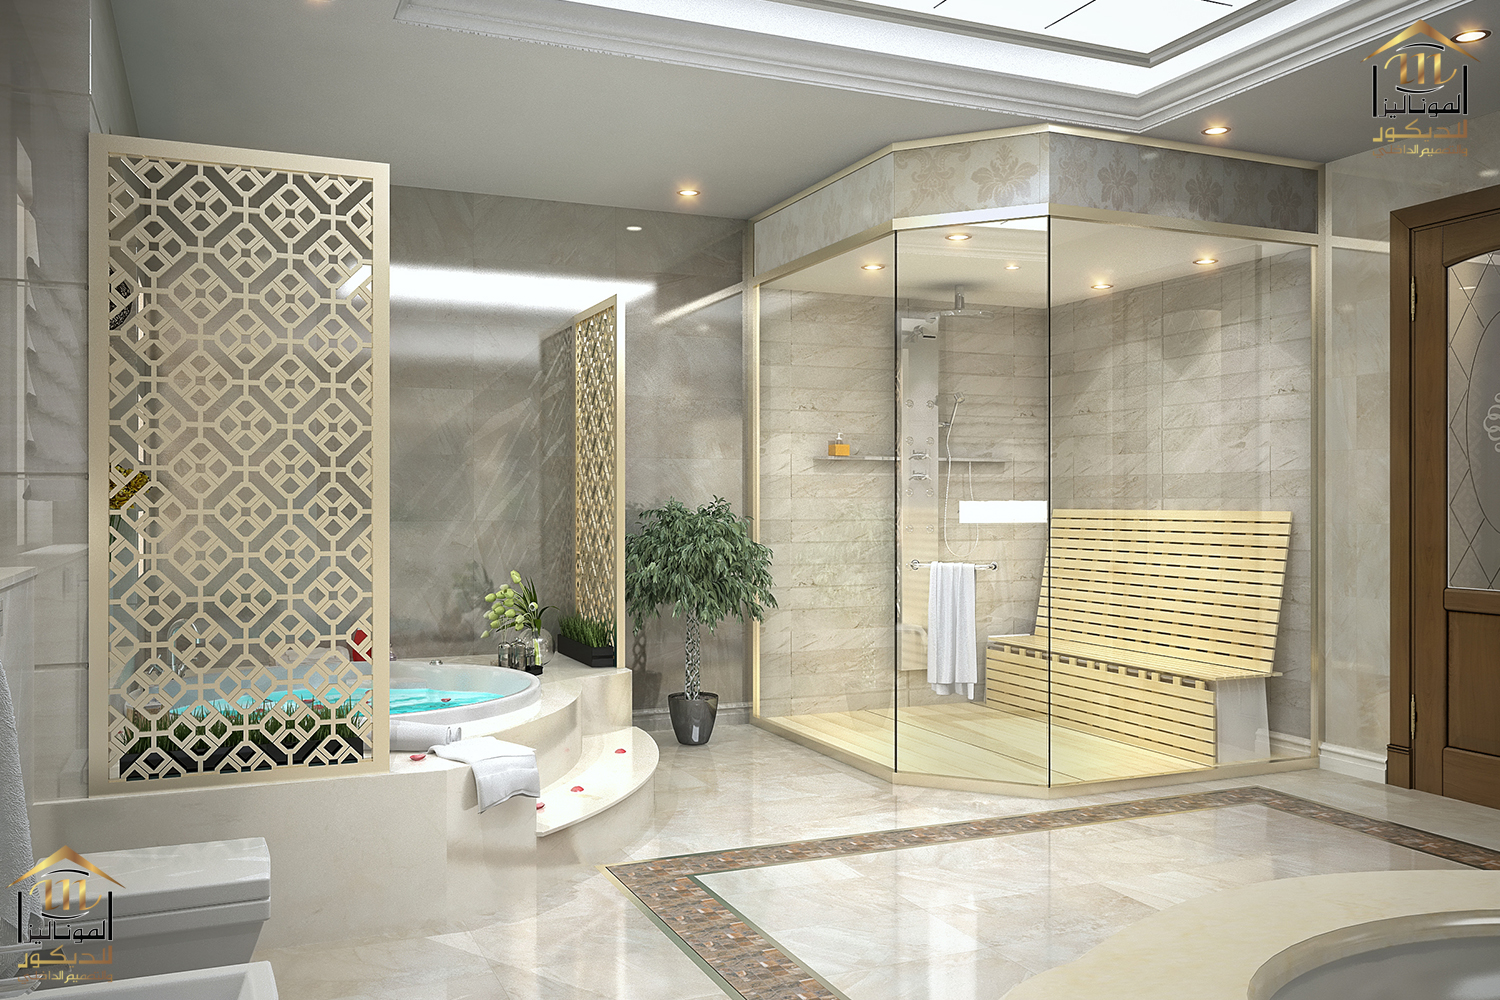 almonaliza group_decoration&interior design_bathrooms (13).jpg